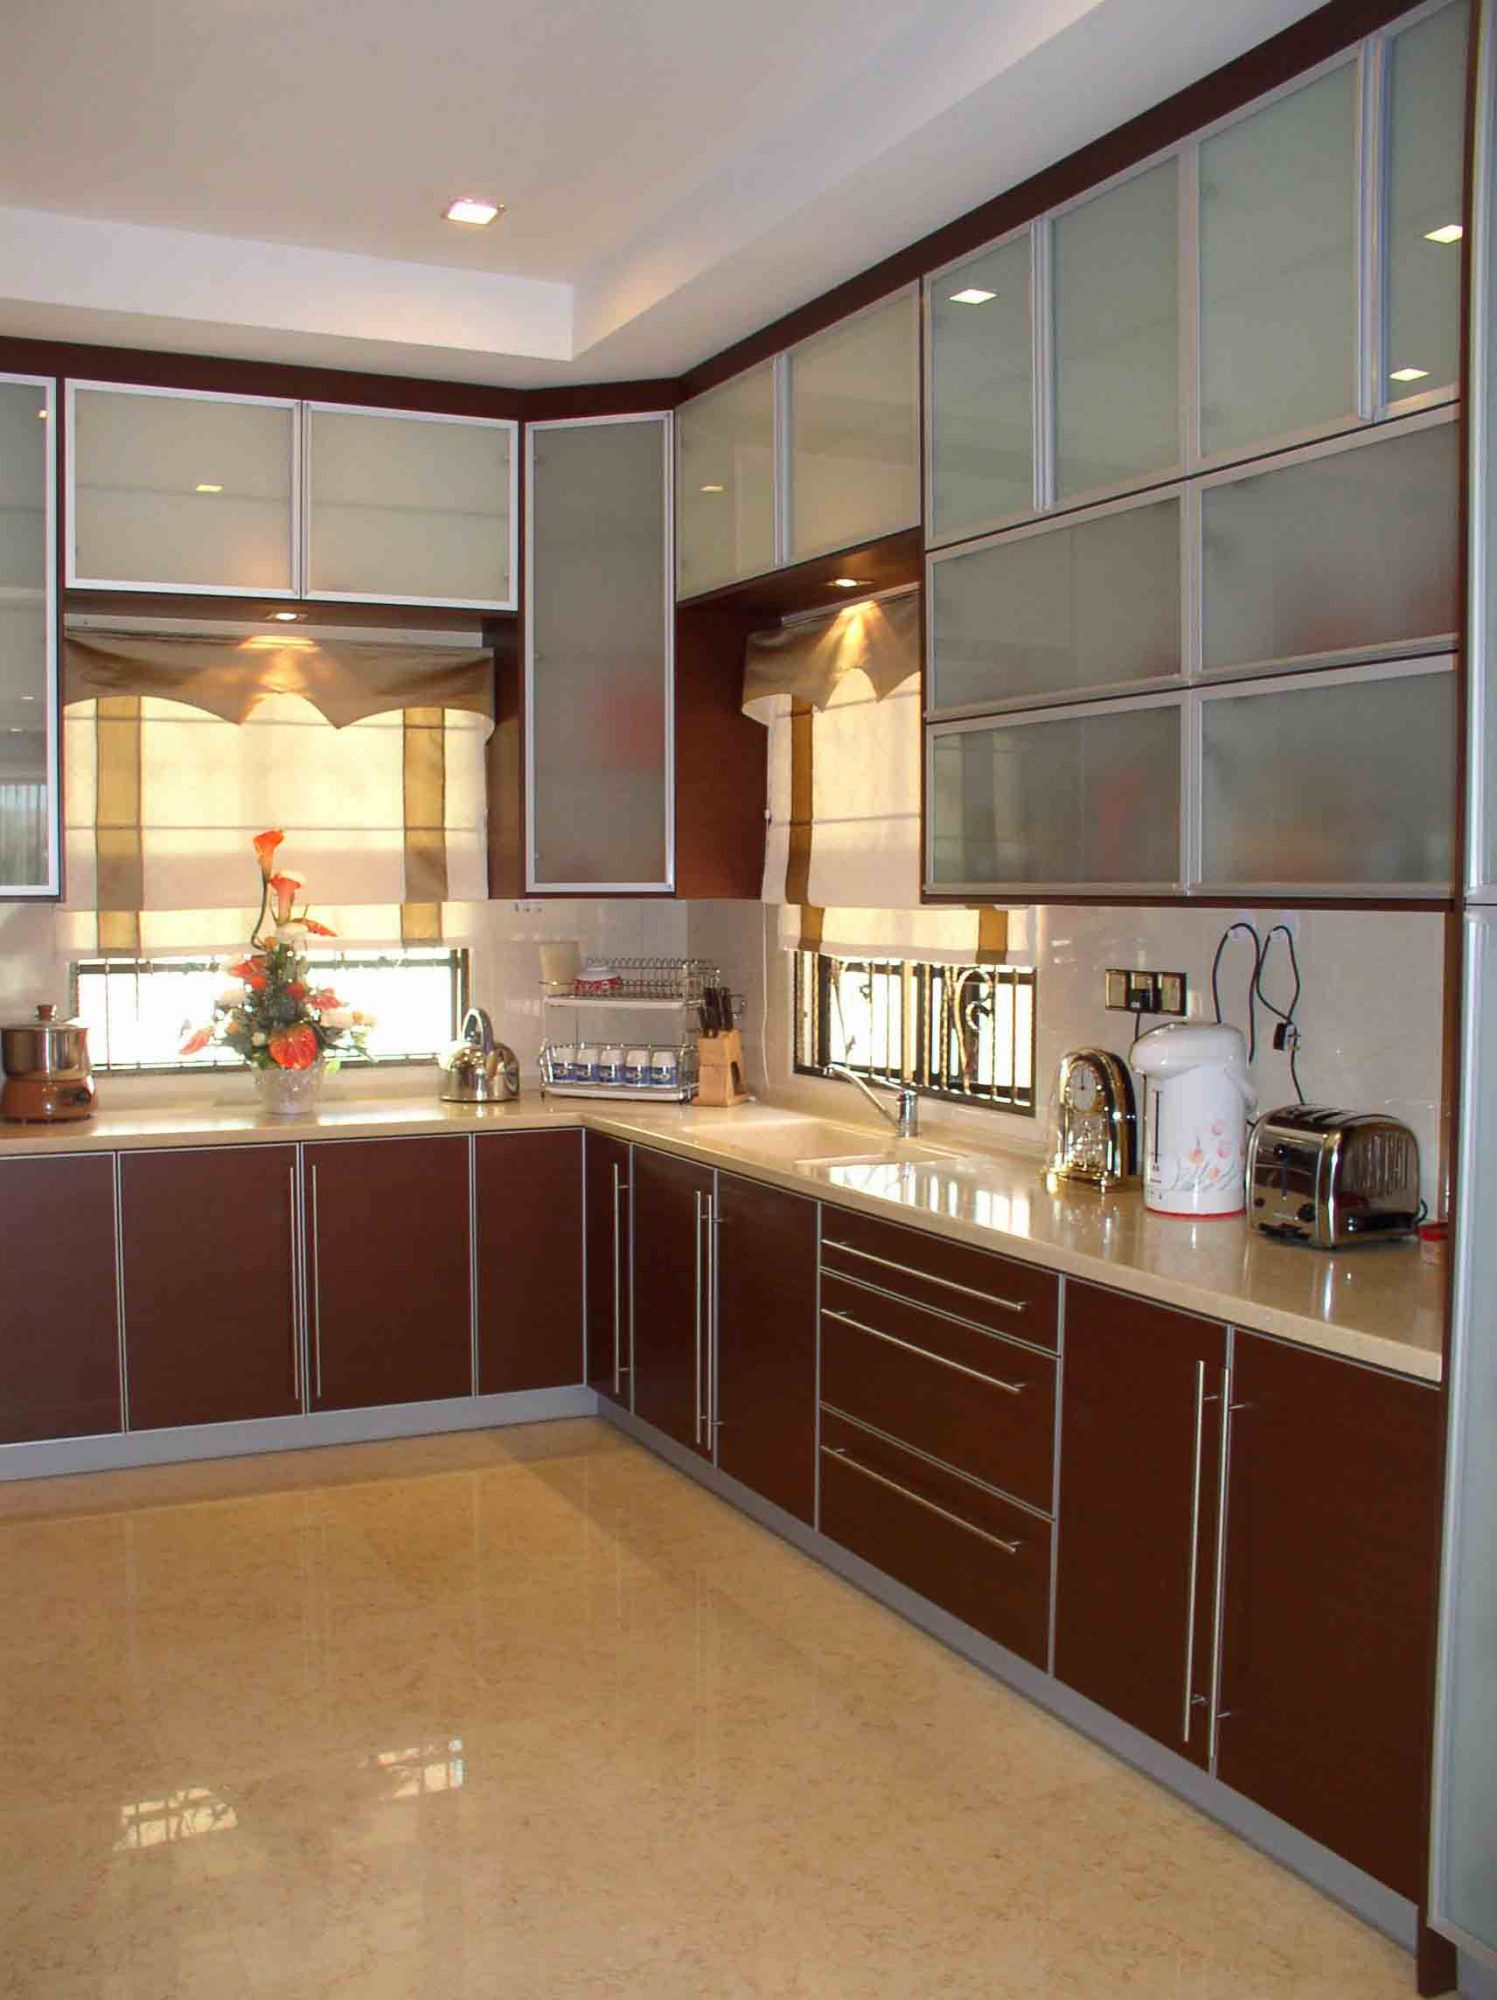 20 popular kitchen cabinet designs in malaysia recommend living for Kitchen cabinet layout designer